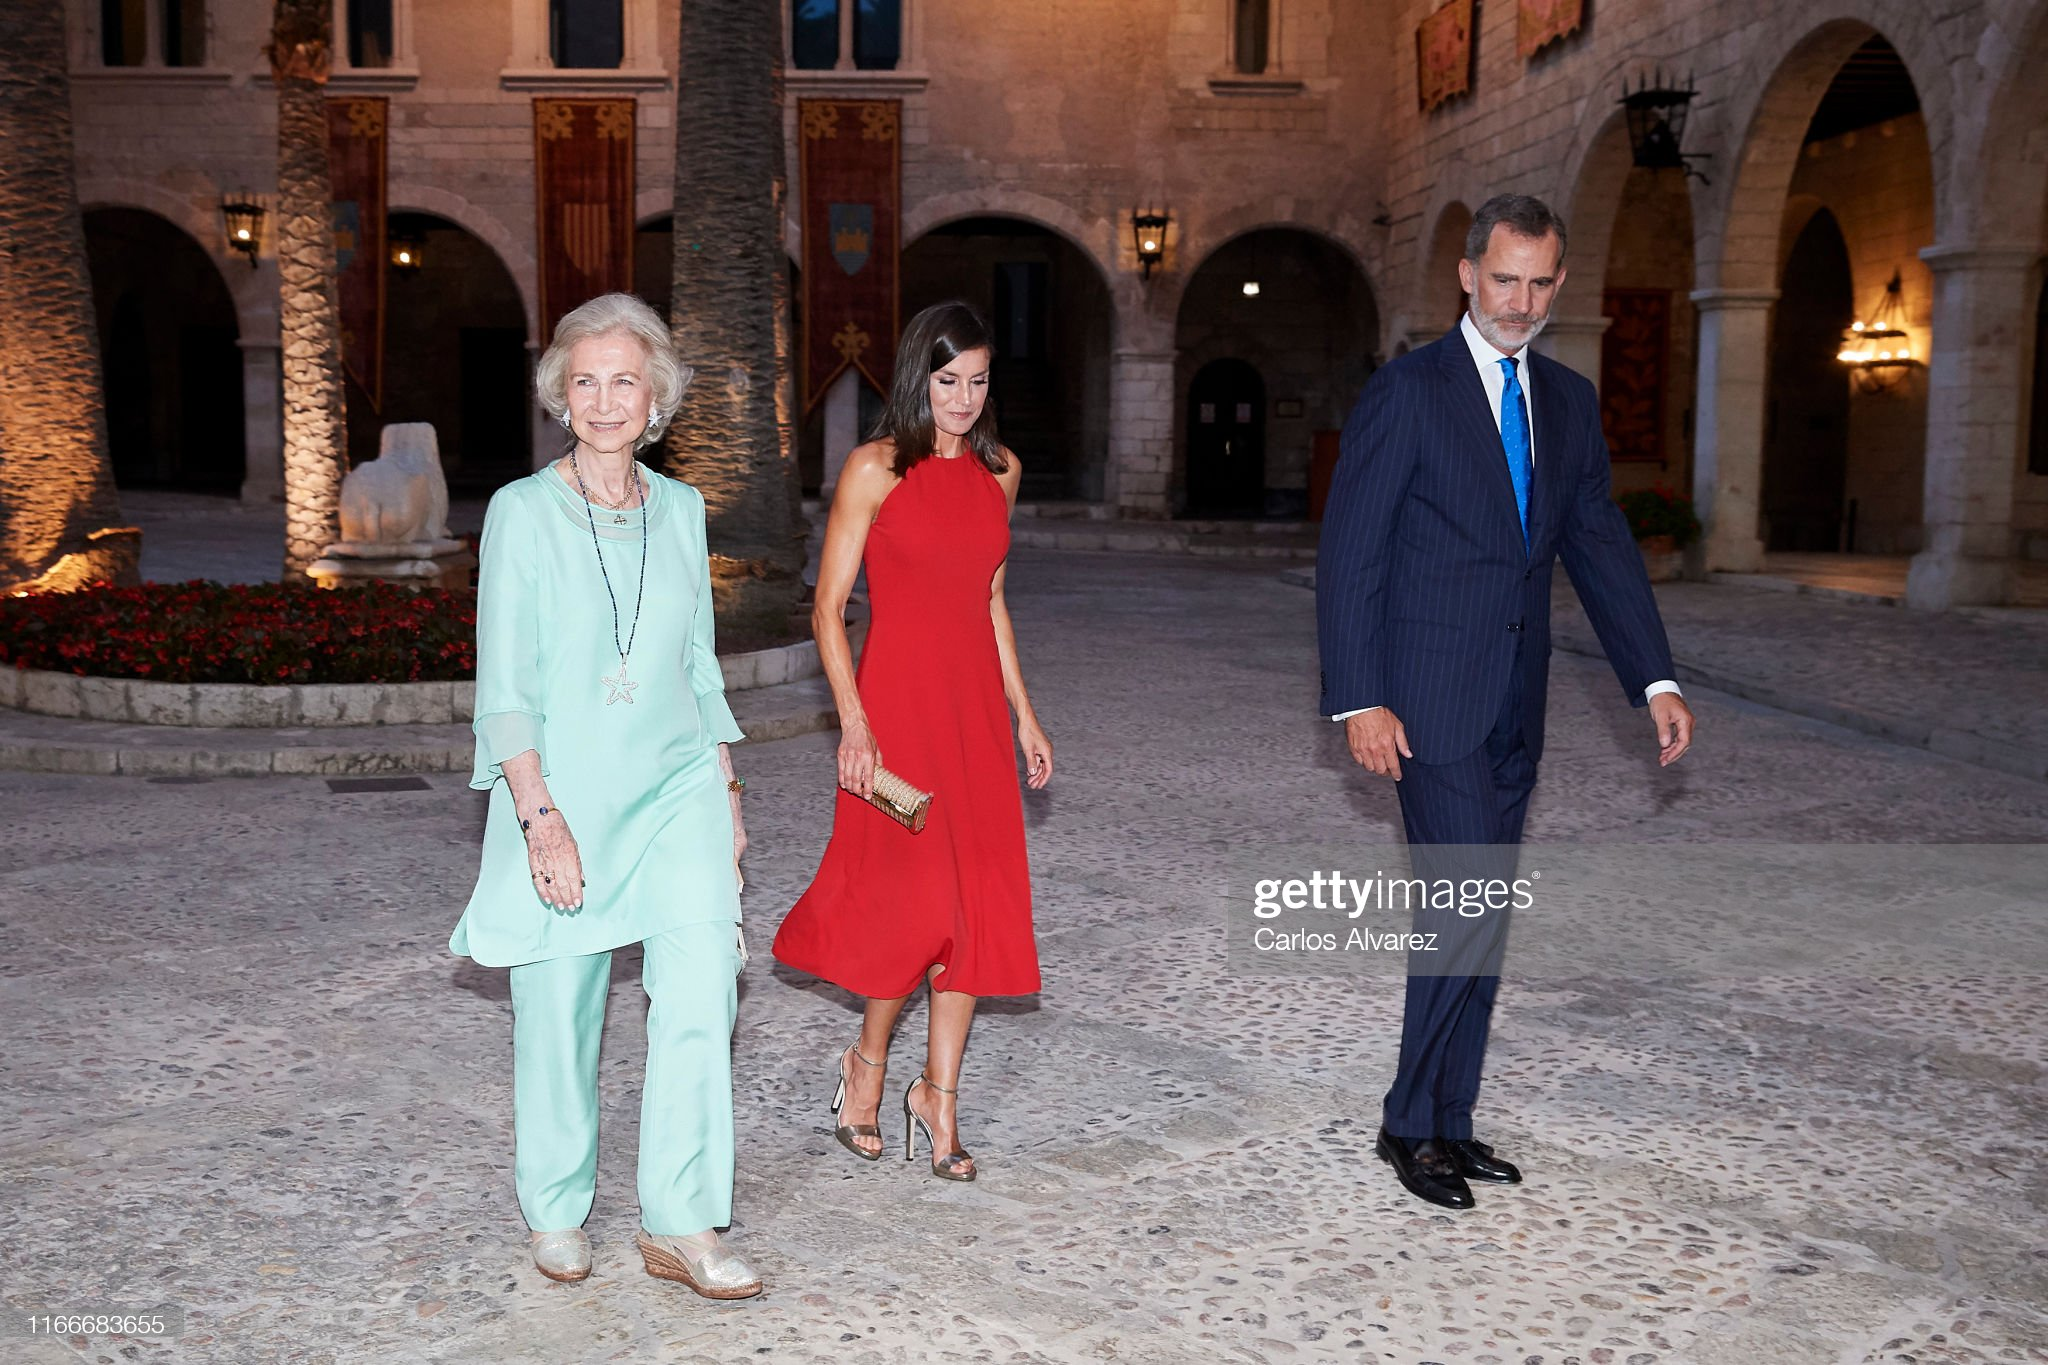 https://media.gettyimages.com/photos/king-felipe-vi-of-spain-queen-letizia-of-spain-and-queen-sofia-host-a-picture-id1166683655?s=2048x2048